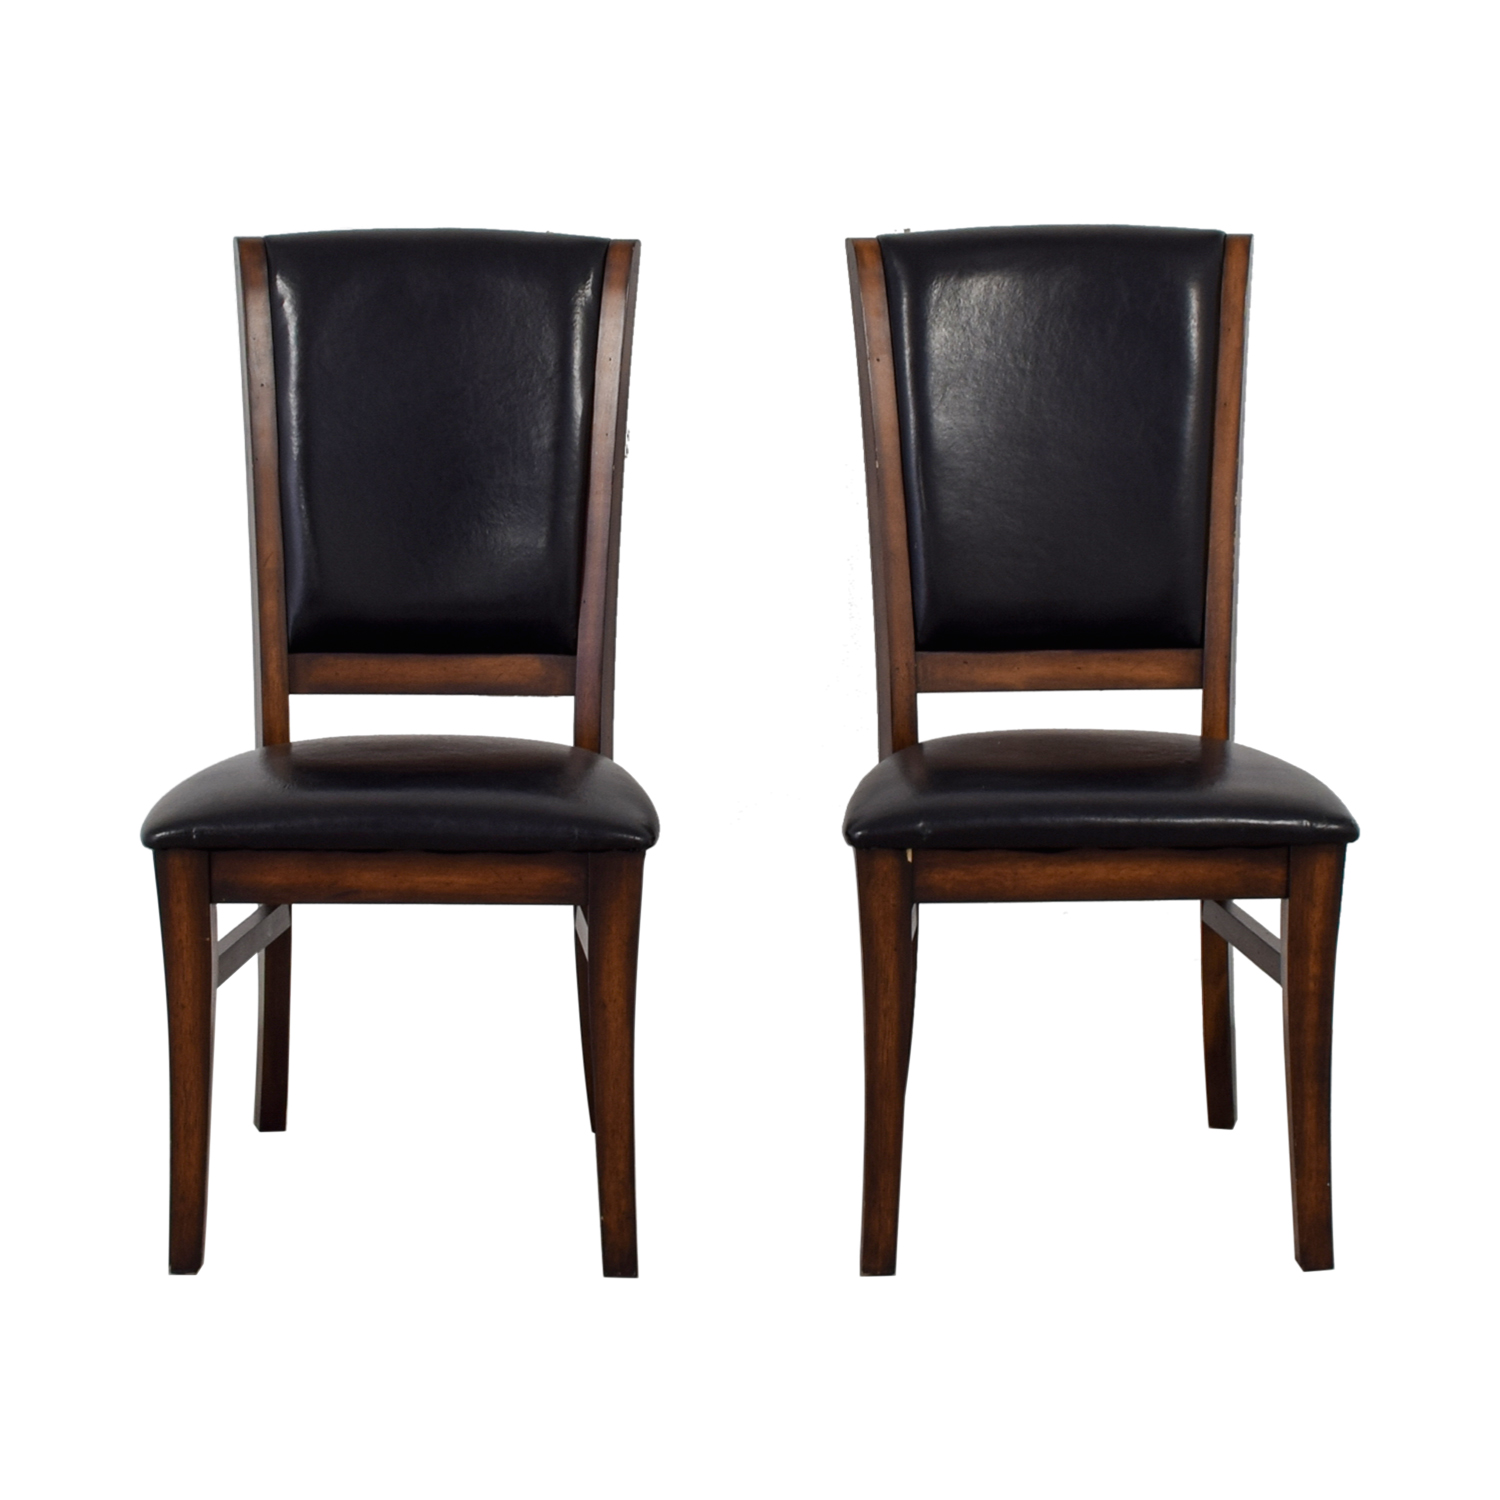 shop  Leather and Wood Dining Chairs online